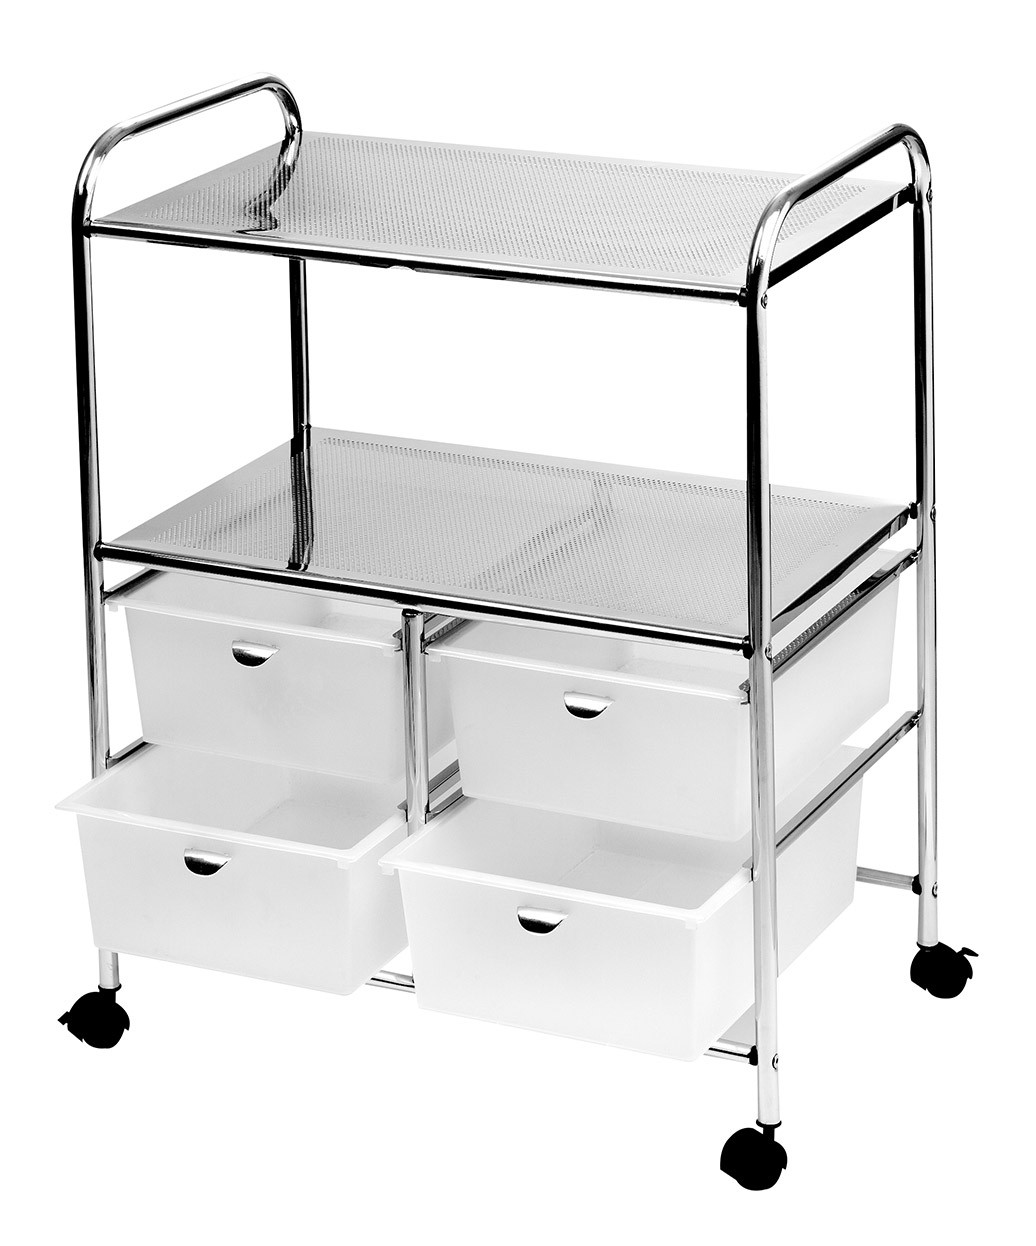 Beauty Trolleys Trolleys Carts For Hair Salons Stylists Barbers From Buy Rite